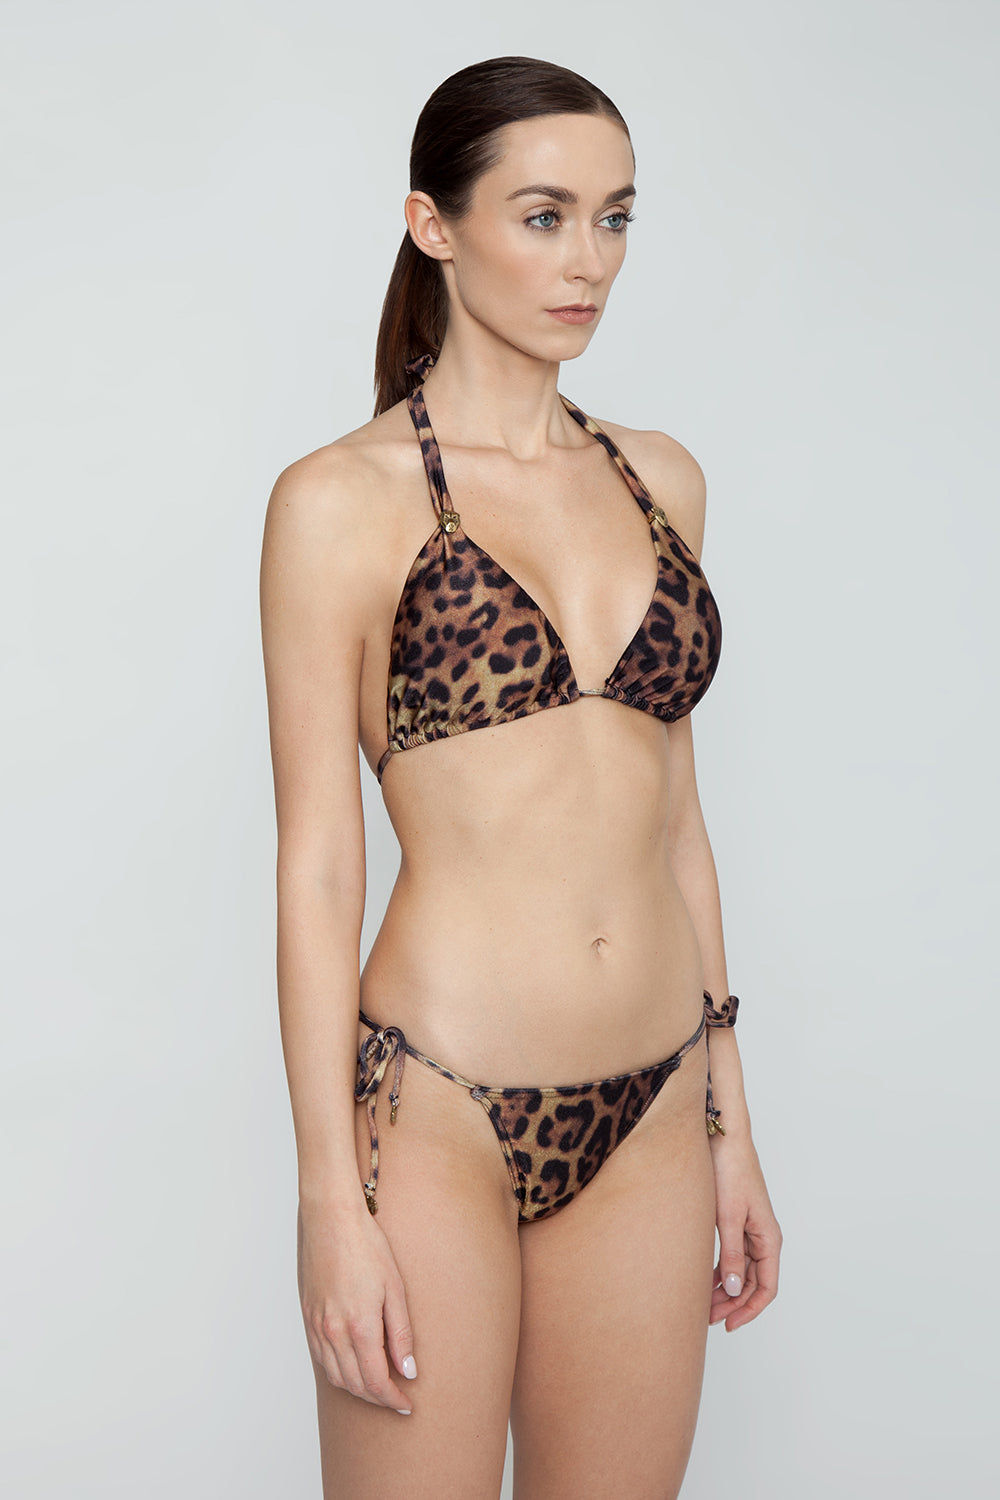 ROSA CHA Carla Strappy Triangle Bikini Top - Leopard Animal Print Bikini Top | Leopard Animal Print| Rosa Cha Carla Strappy Triangle Bikini Top - Leopard Animal Print Fabulous leopard print triangle bikini top with gold leopard head detail. Elegant leopard printed swim fabric will have you dreaming of romantic hideaways and secret beaches on far-off shores.Front View